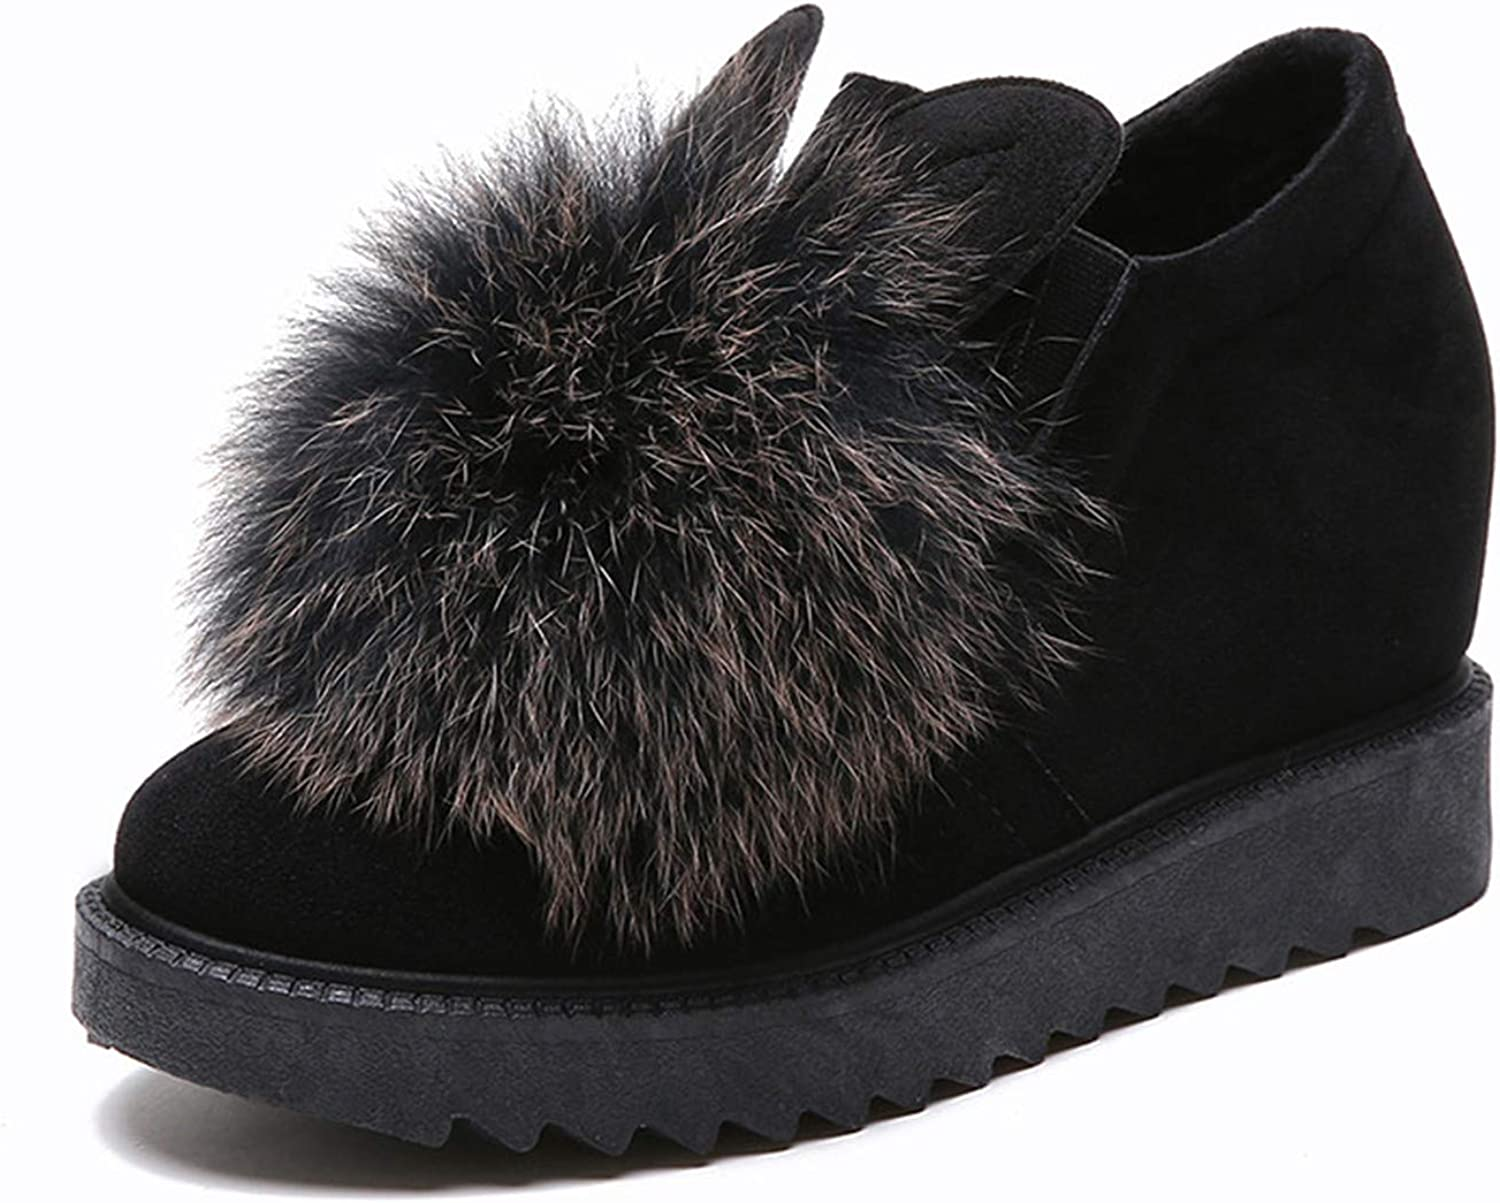 Kongsta New Women Snow Boots Warm Fur Winter Boots Slip On Lazy shoes Comfort Women Ankle Boots Wedge Heels shoes Woman